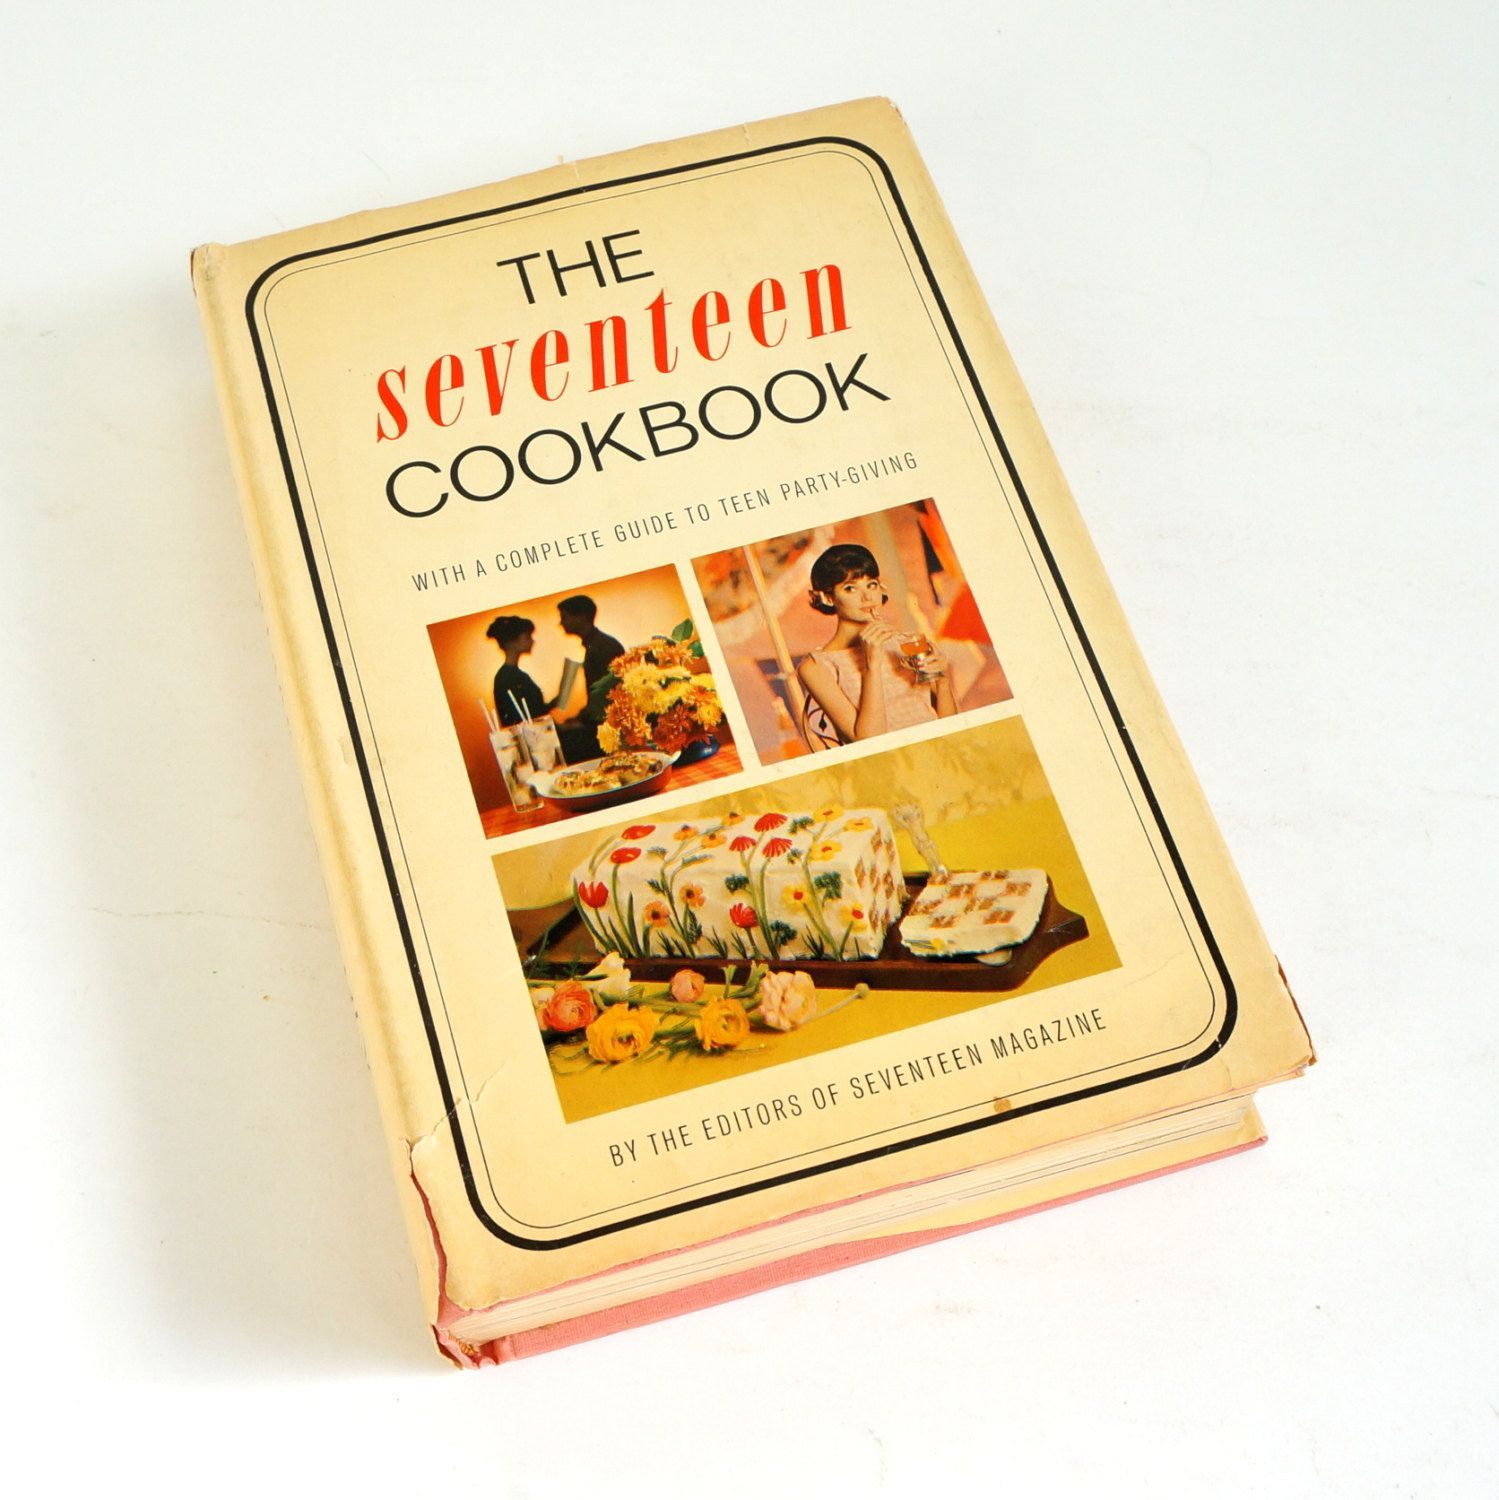 Seventeen Cookbook by Editors of Seventeen Magazine 1967 HCDj / Complete Guide to Teen Party-Giving / Future Suzy Homemaker in the Kitchen by AttysVintage on Etsy